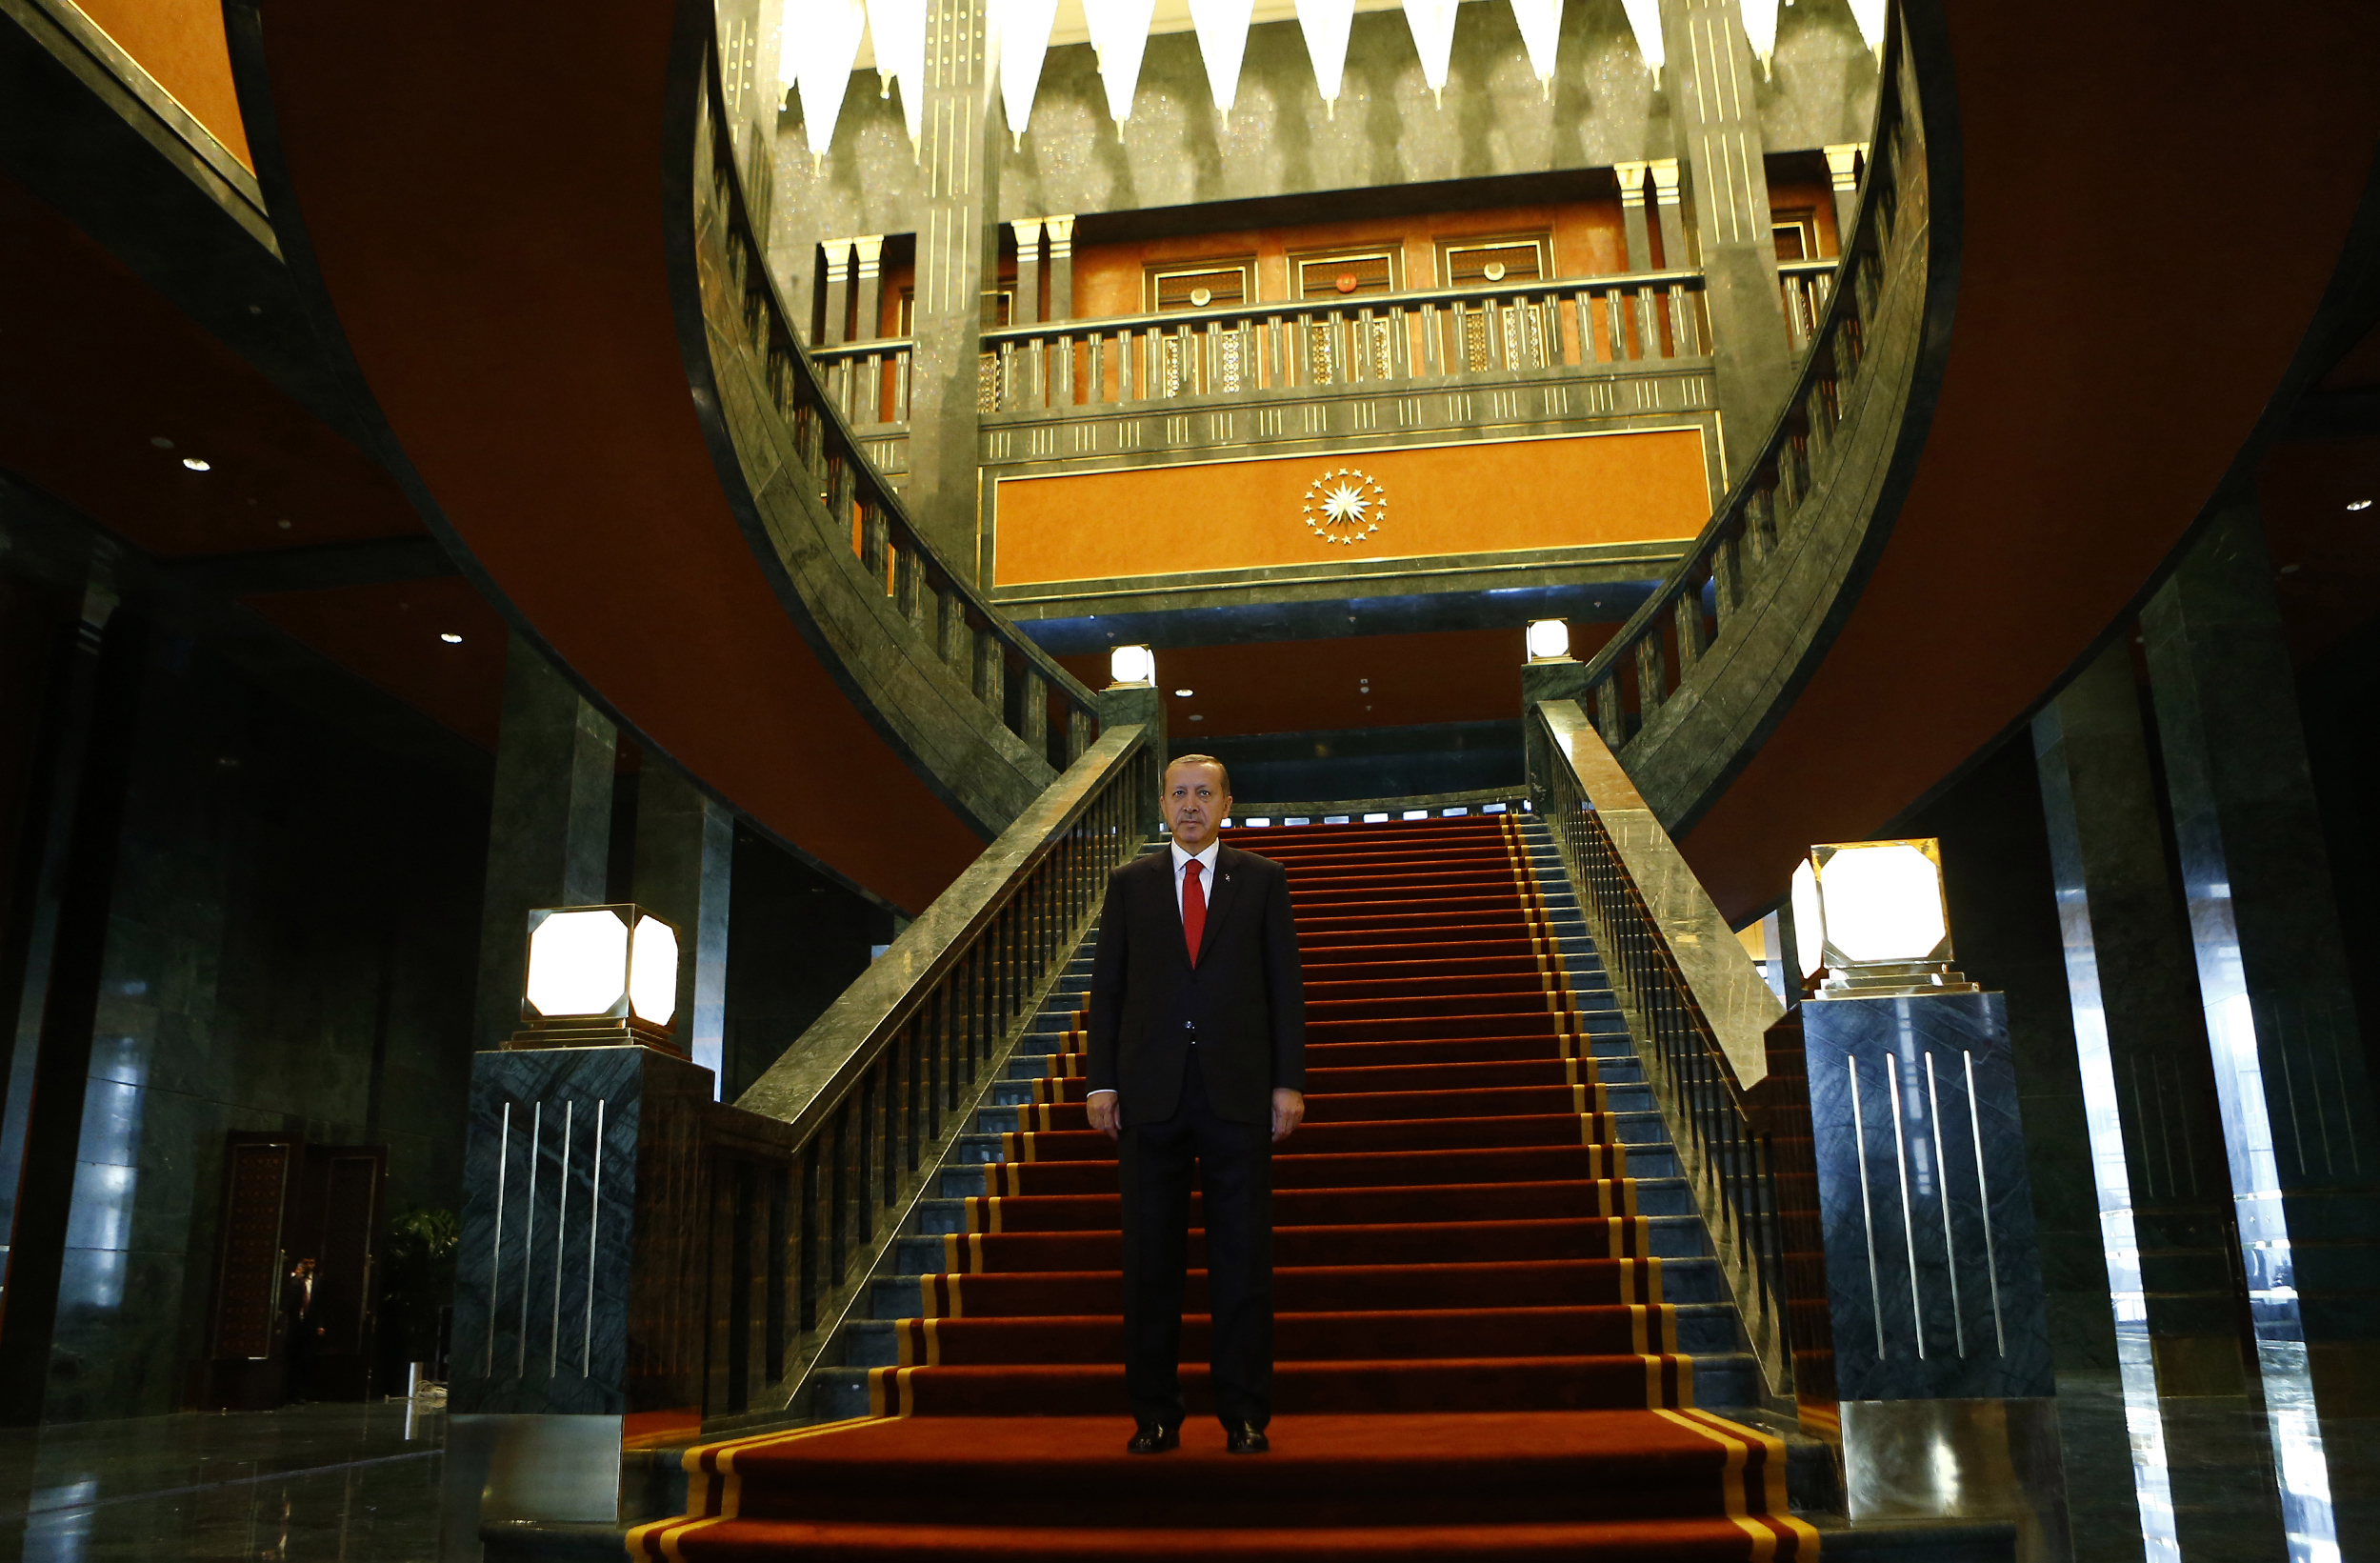 Turkey's President Tayyip Erdogan poses after an official ceremony to mark Republic Day at the new Presidential Palace in Ankara October 29, 2014.